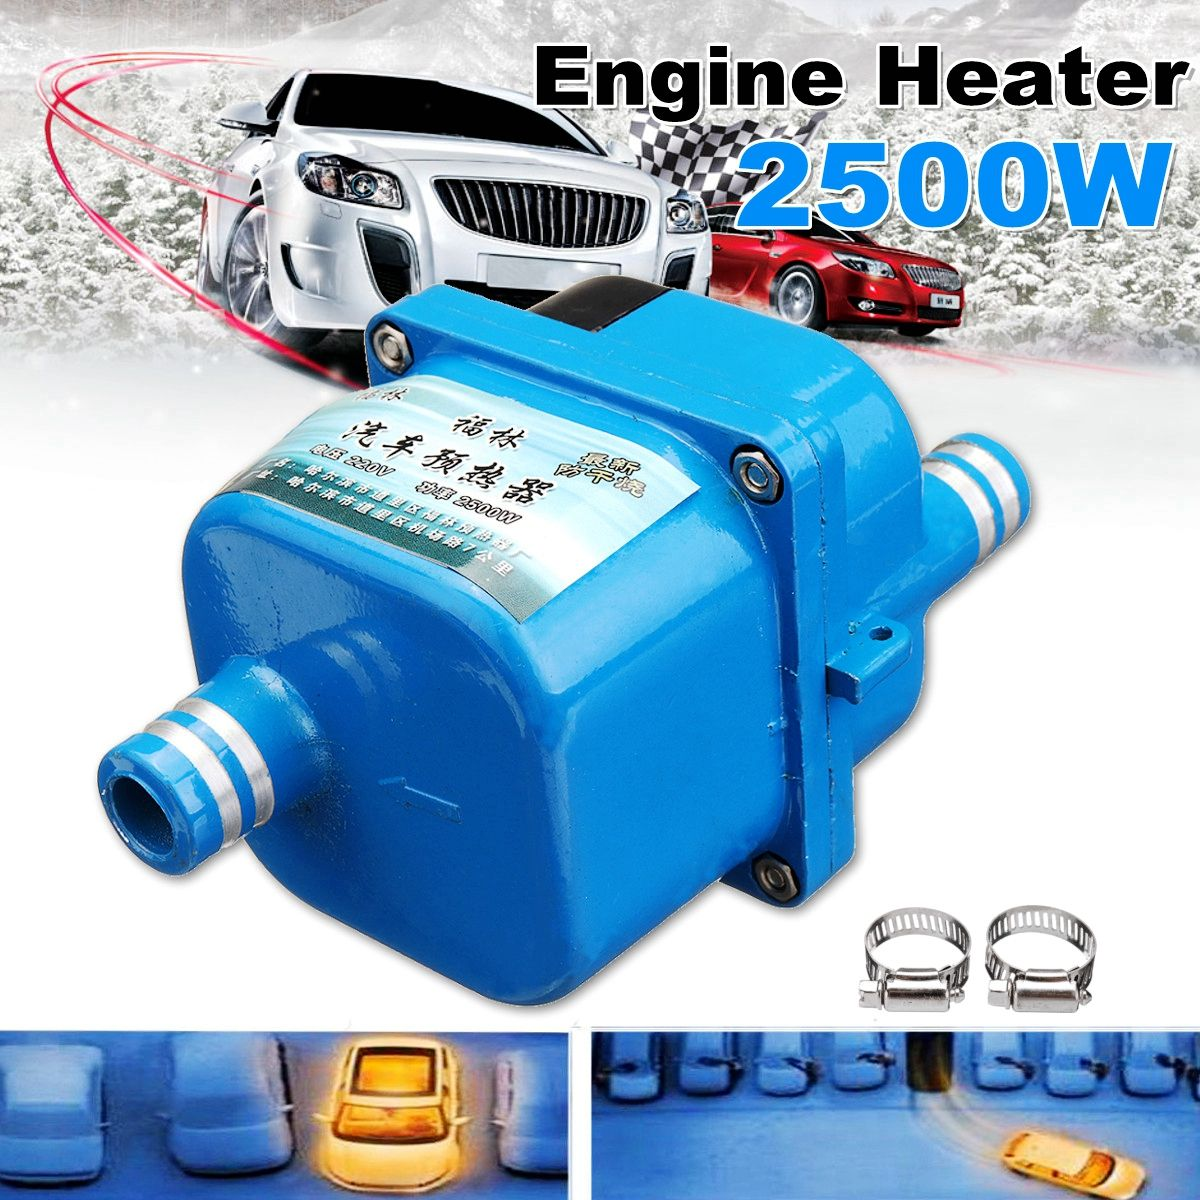 220V 2500W Auto Car Engine Pump Water Tank Air Cooled Engine Heater Preheater